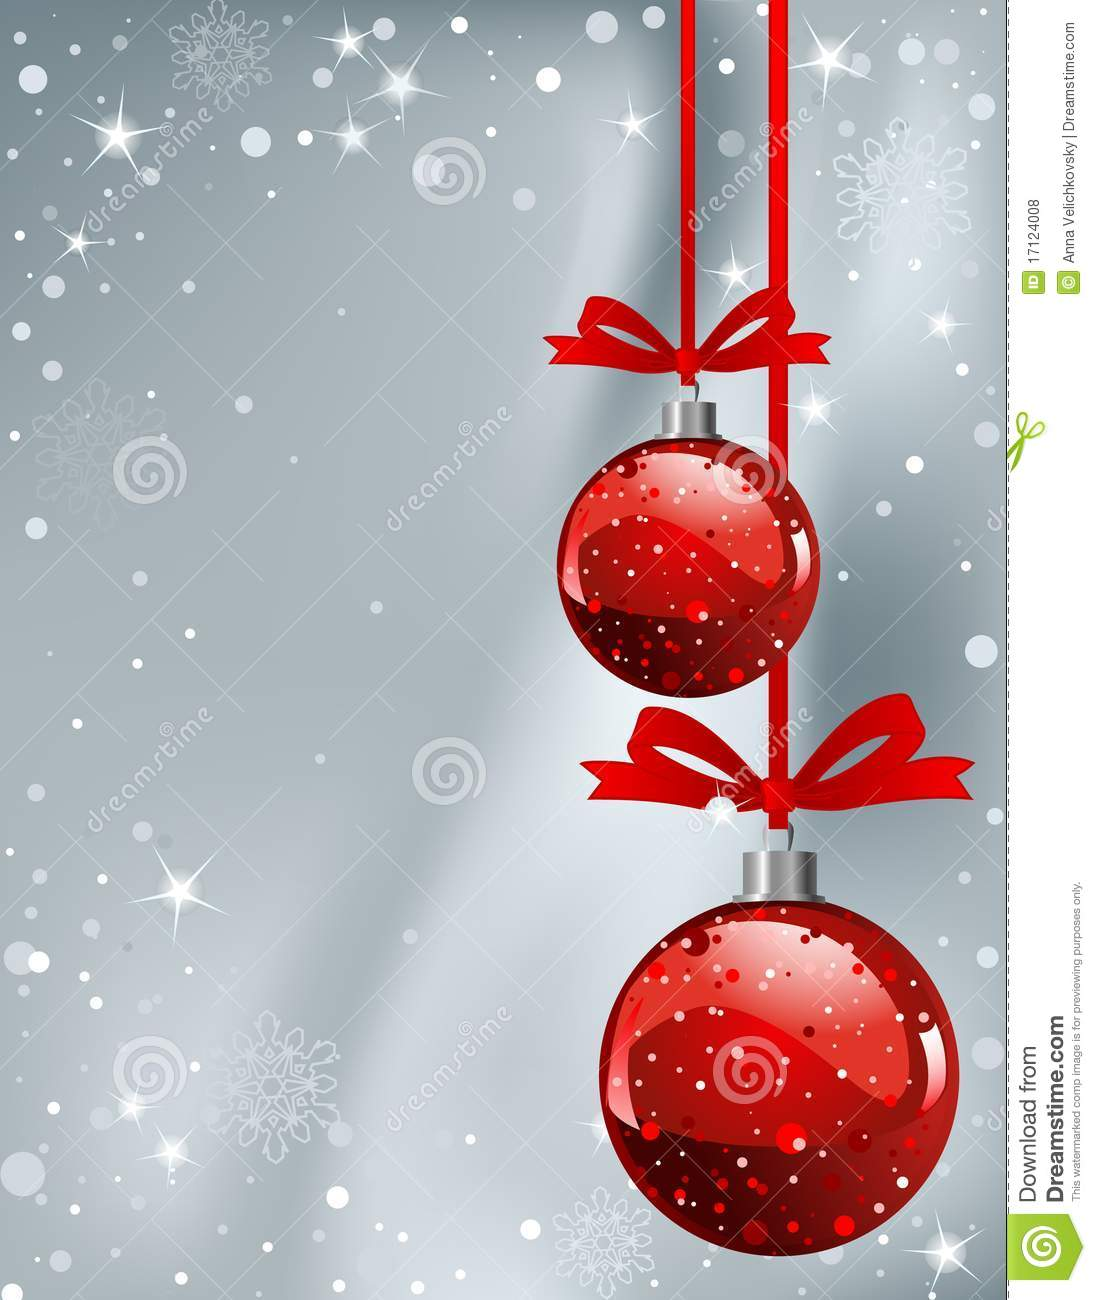 Vertical Christmas Place Card Royalty Free Stock Photos - Image ...